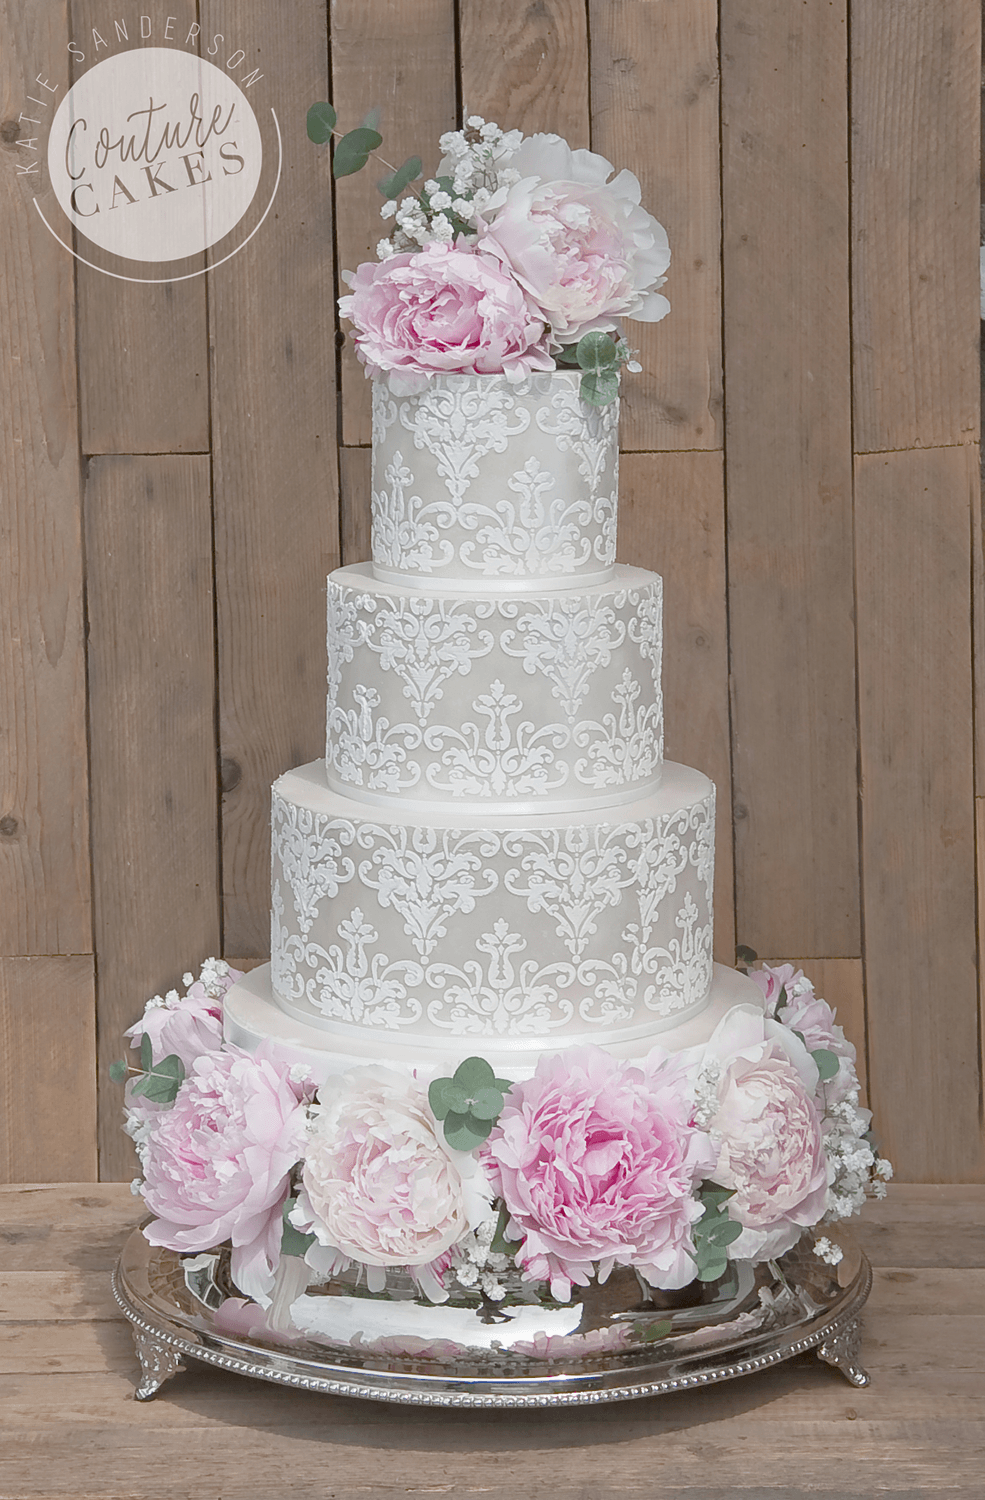 Categories : Modern - Couture Cakes